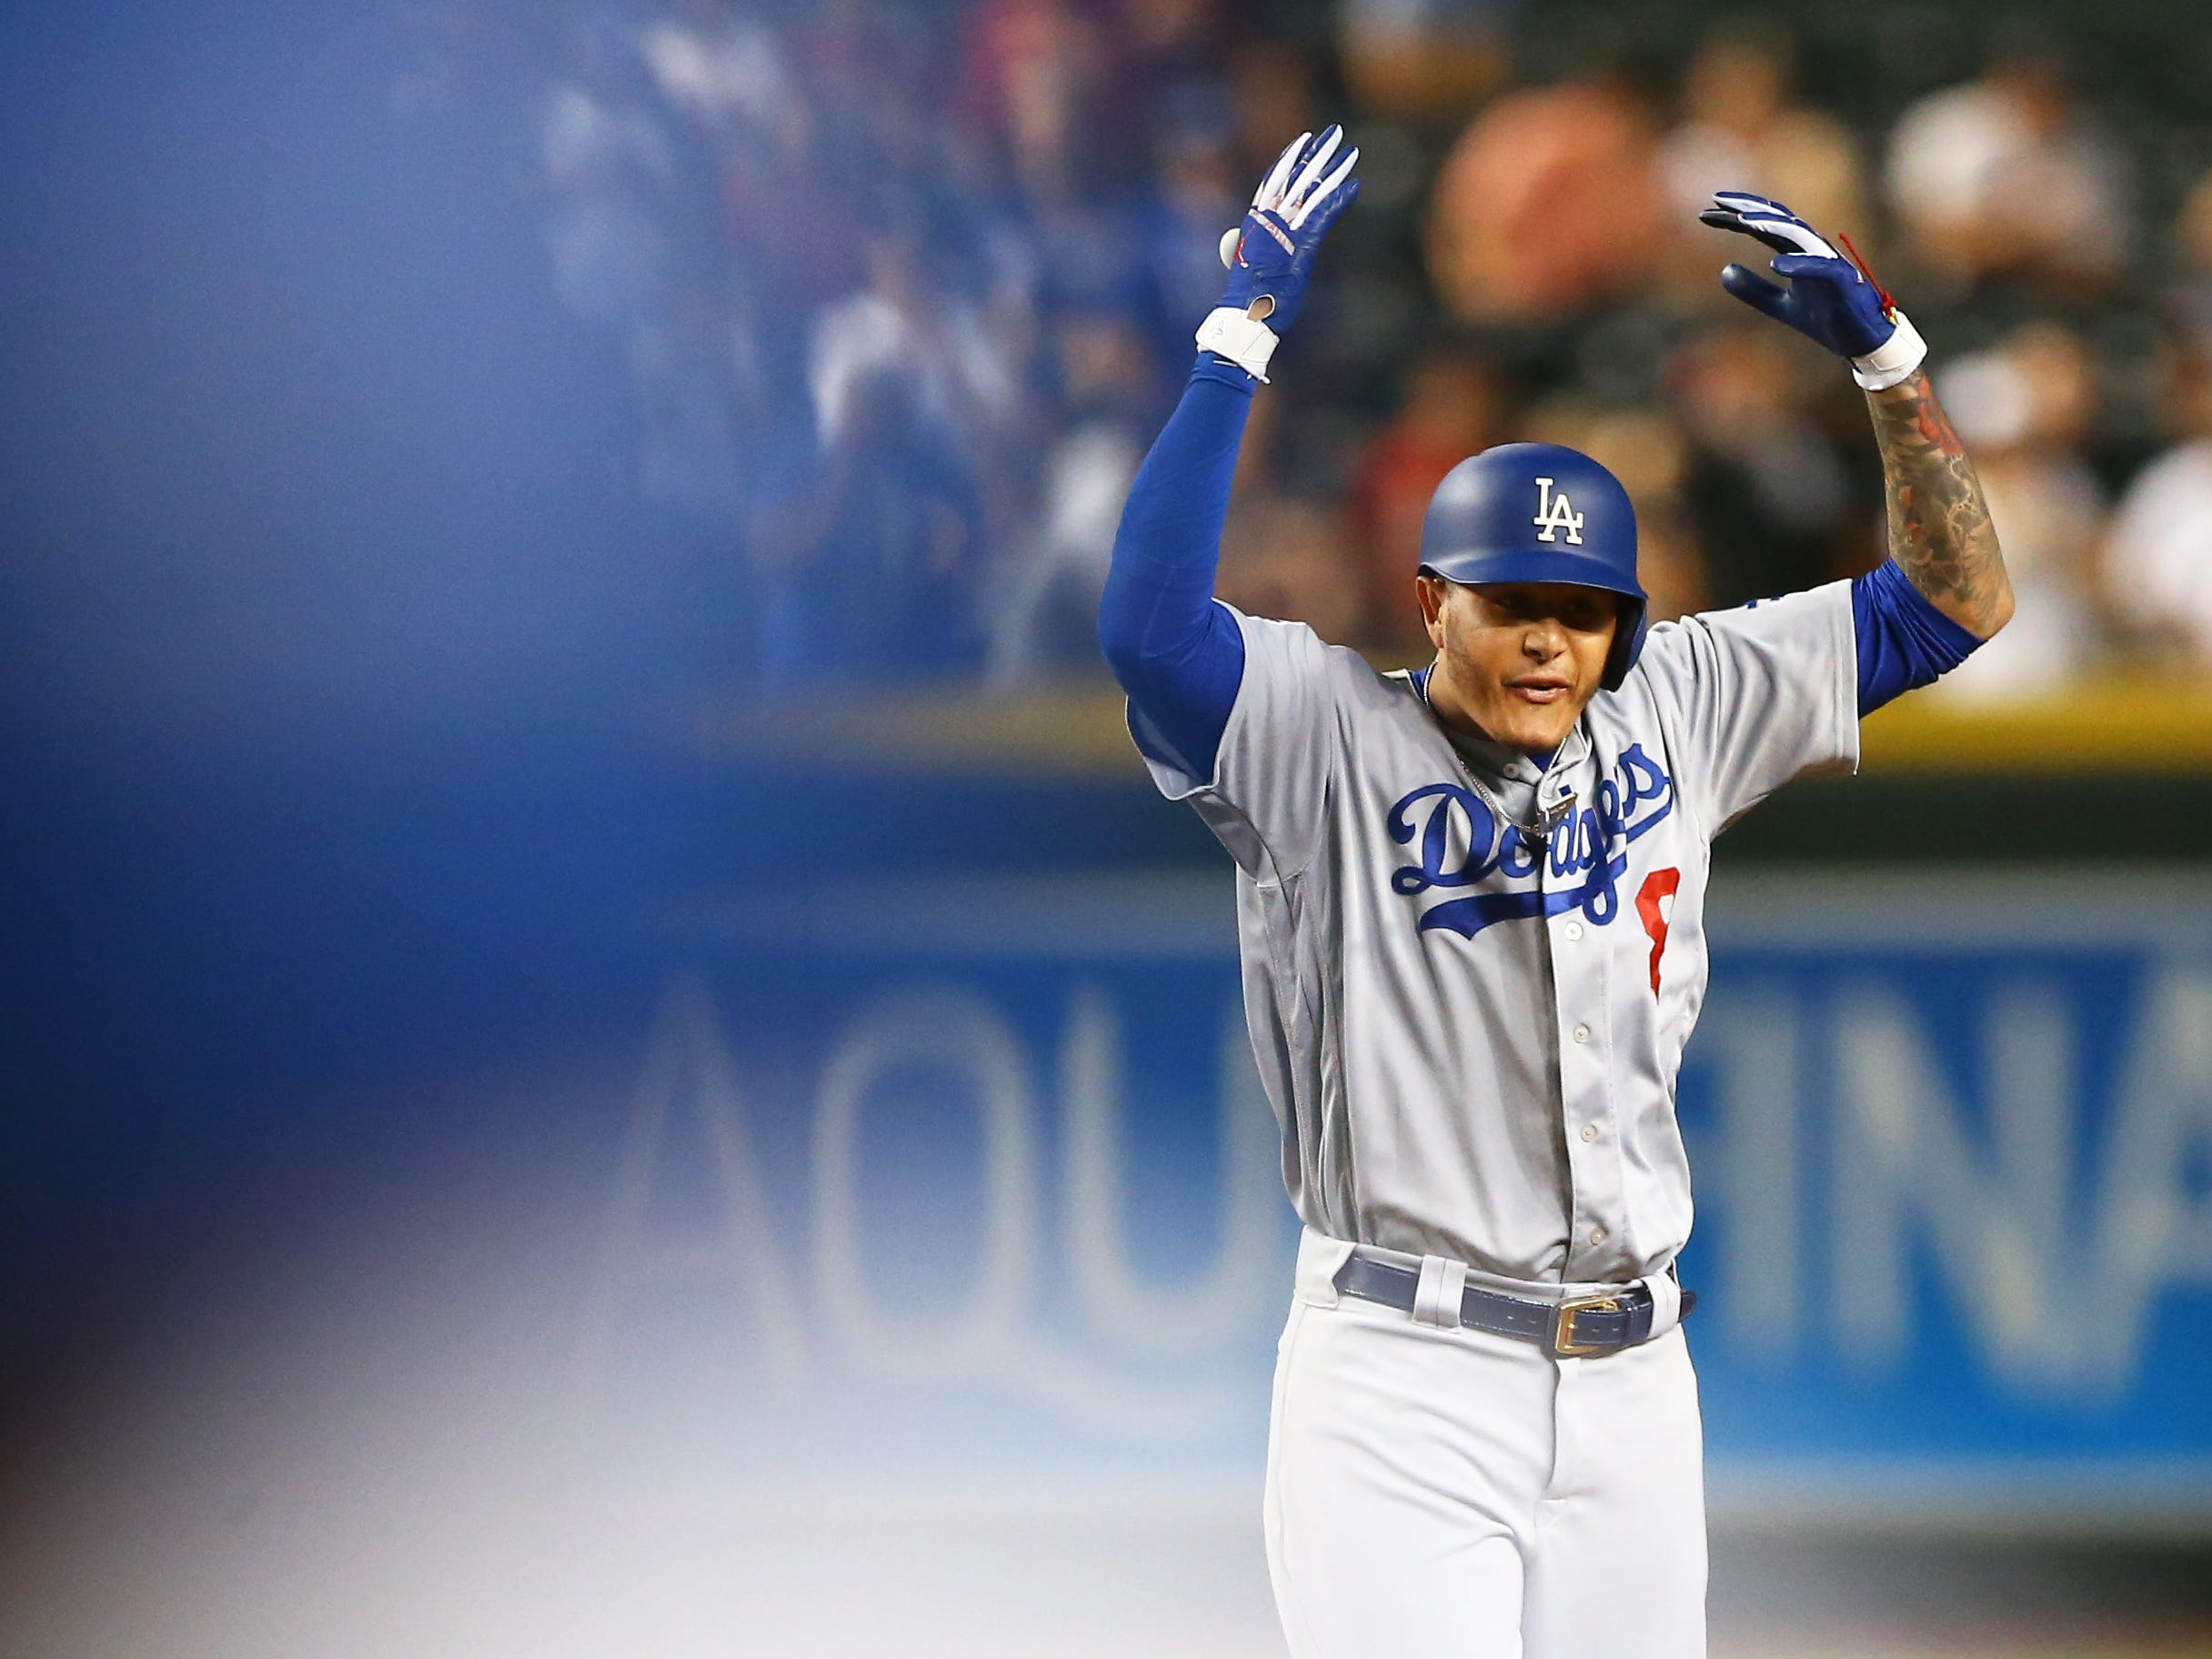 Sep 25, 2018: Los Angeles Dodgers shortstop Manny Machado celebrates after hitting an eighth inning double against the Arizona Diamondbacks at Chase Field.